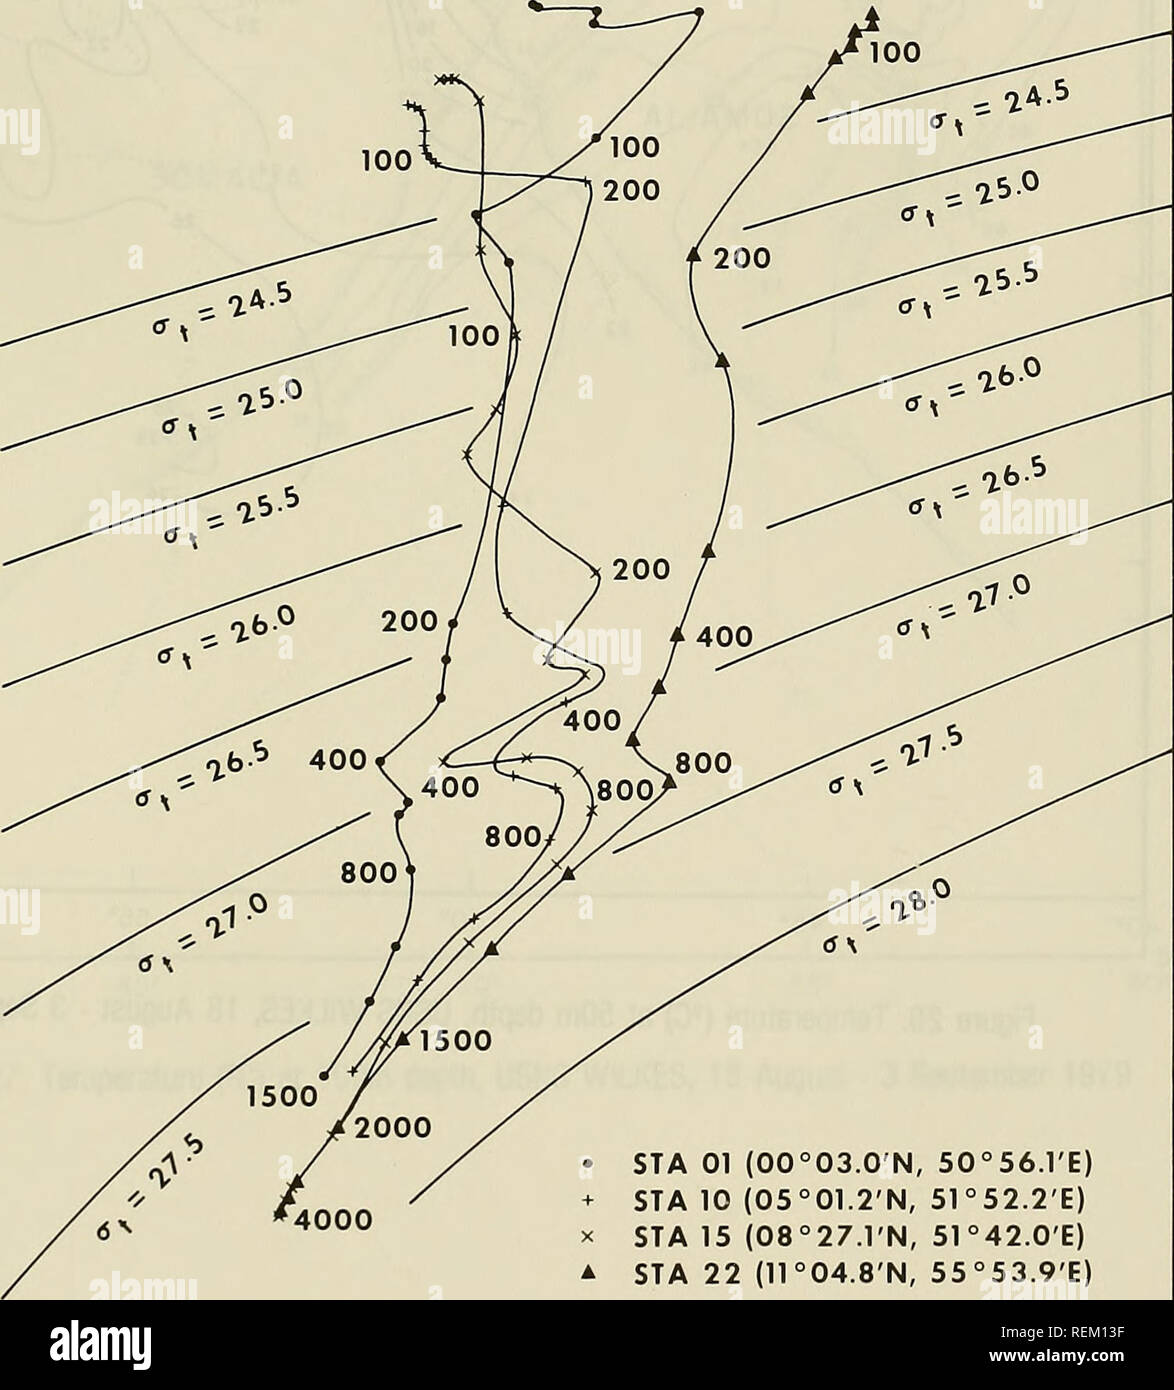 . Circulation and oceanographic properties in the Somali Basin as observed during the 1979 southwest monsoon. Oceanography; Ocean currents; Monsoons. 34.0 32.0 30.0 28.0 26.0 24.0 22.0 20.0 _ 18.0 u o S^ 16.0 34.5 SALINITY (%o) 35.0 35.5 36.0 36.5 14.0 12.0 10.0 8.0 6.0 4.0 2.0 0.0 â 2.0. ⢠STA 01 (00°03.0'N, 50°56.rE) + STA 10 (05°01.2'N, 51°52.2'E) X STA 15 (08°27.1'N, 51°42.0'E) A STA 22 (11°04.8'N, 55°53.9'E) Figure 25. Temperature-Salinity (TS) Curves, Stations 1, 10, 15, 22 49. Please note that these images are extracted from scanned page images that may have been digitally enha Stock Photo